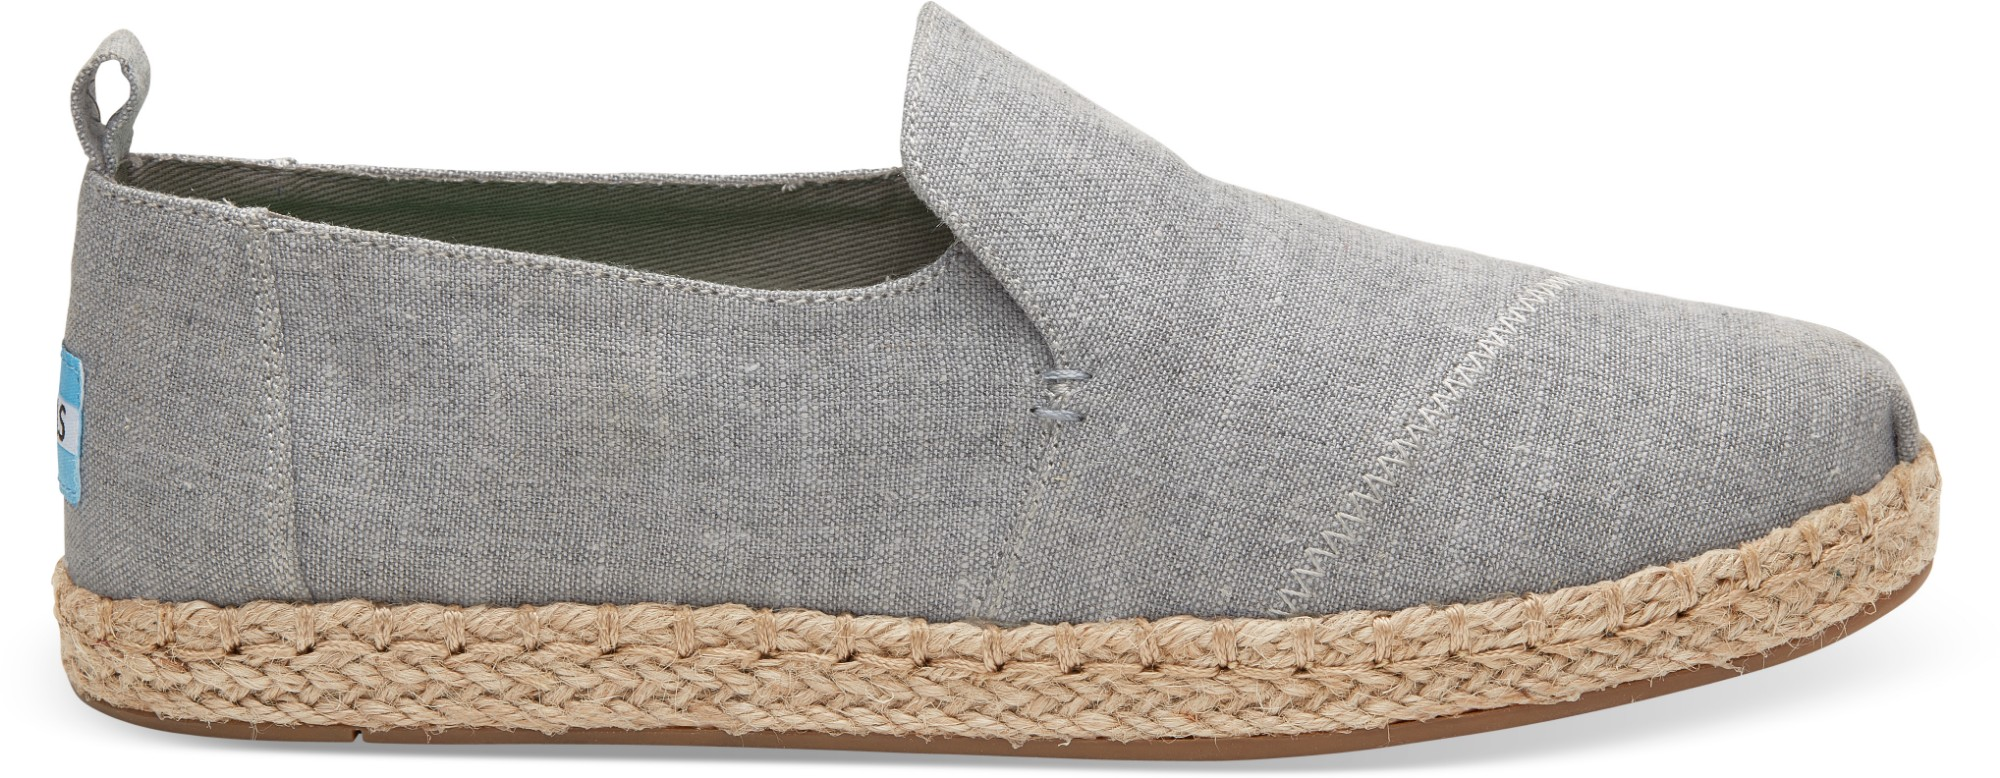 TOMS Slub Chambray Women's Deconstructed Alpargata Drizzle Grey 40